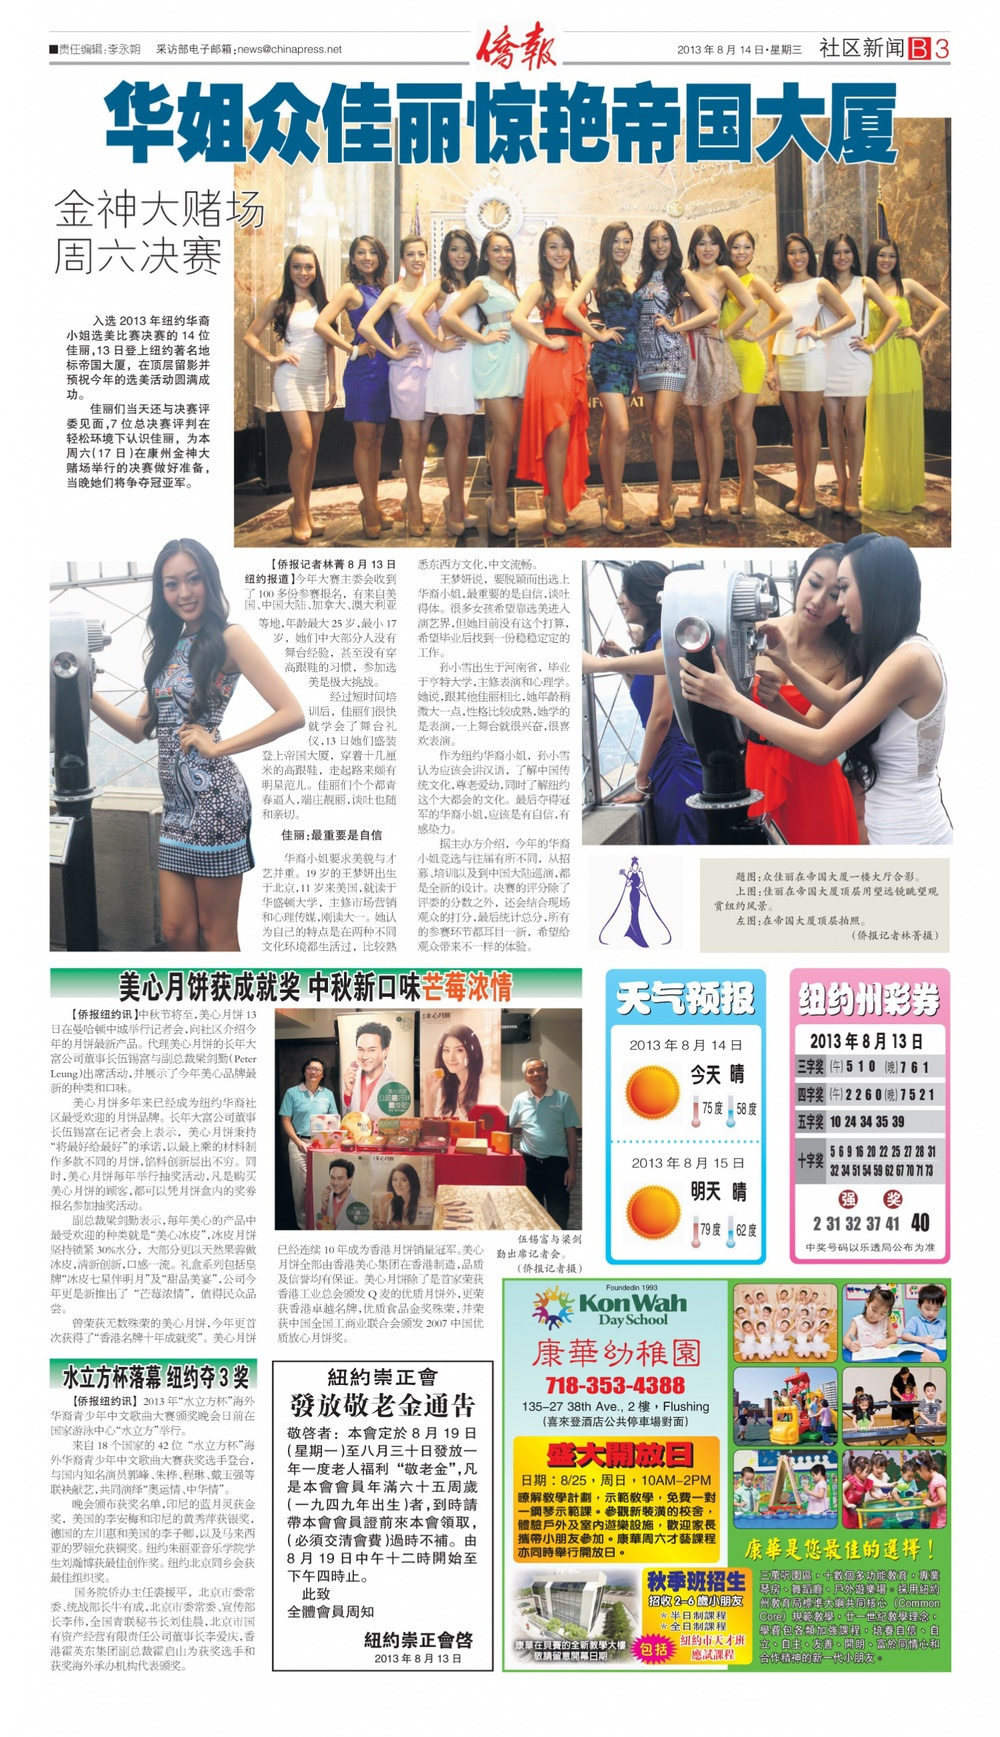 MNYCBP_2013_Press08-14-13_Empire_ChinaPress.jpg